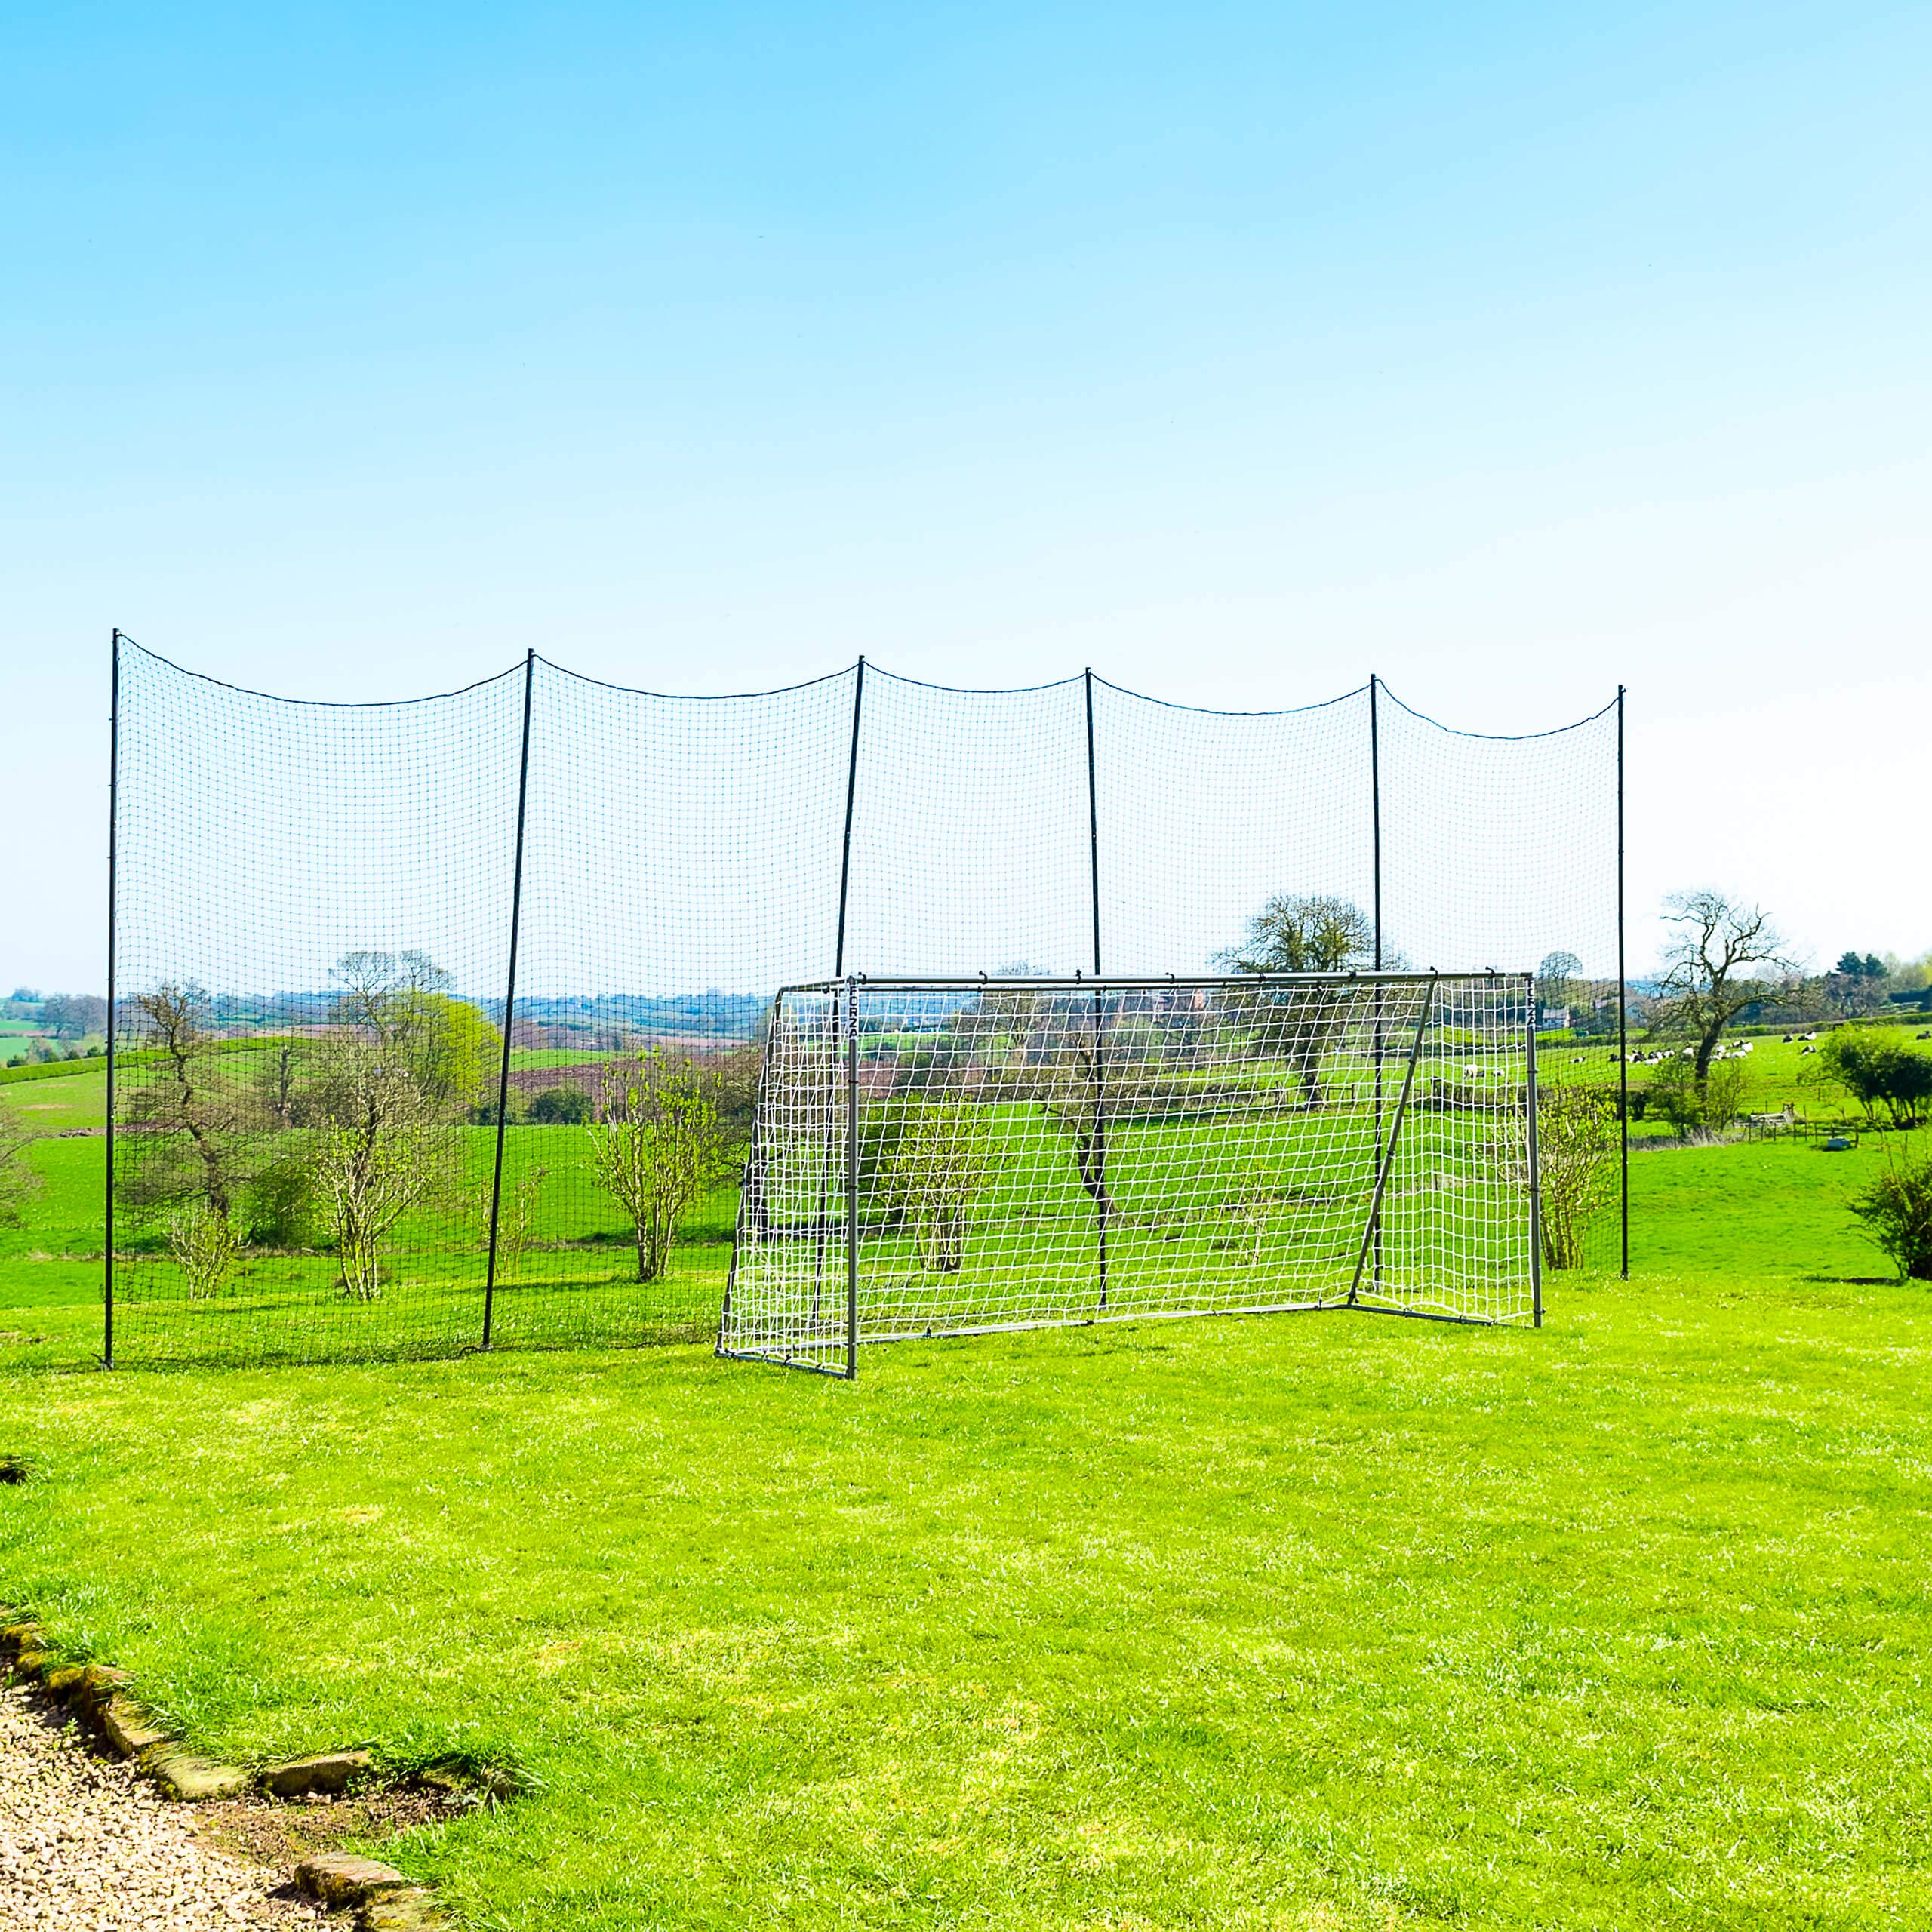 Socketed Stop That Ball - Multi-Sport Ball Stop Netting System for The Backyard, School or Sports Clubs (40ft) by Net World Sports